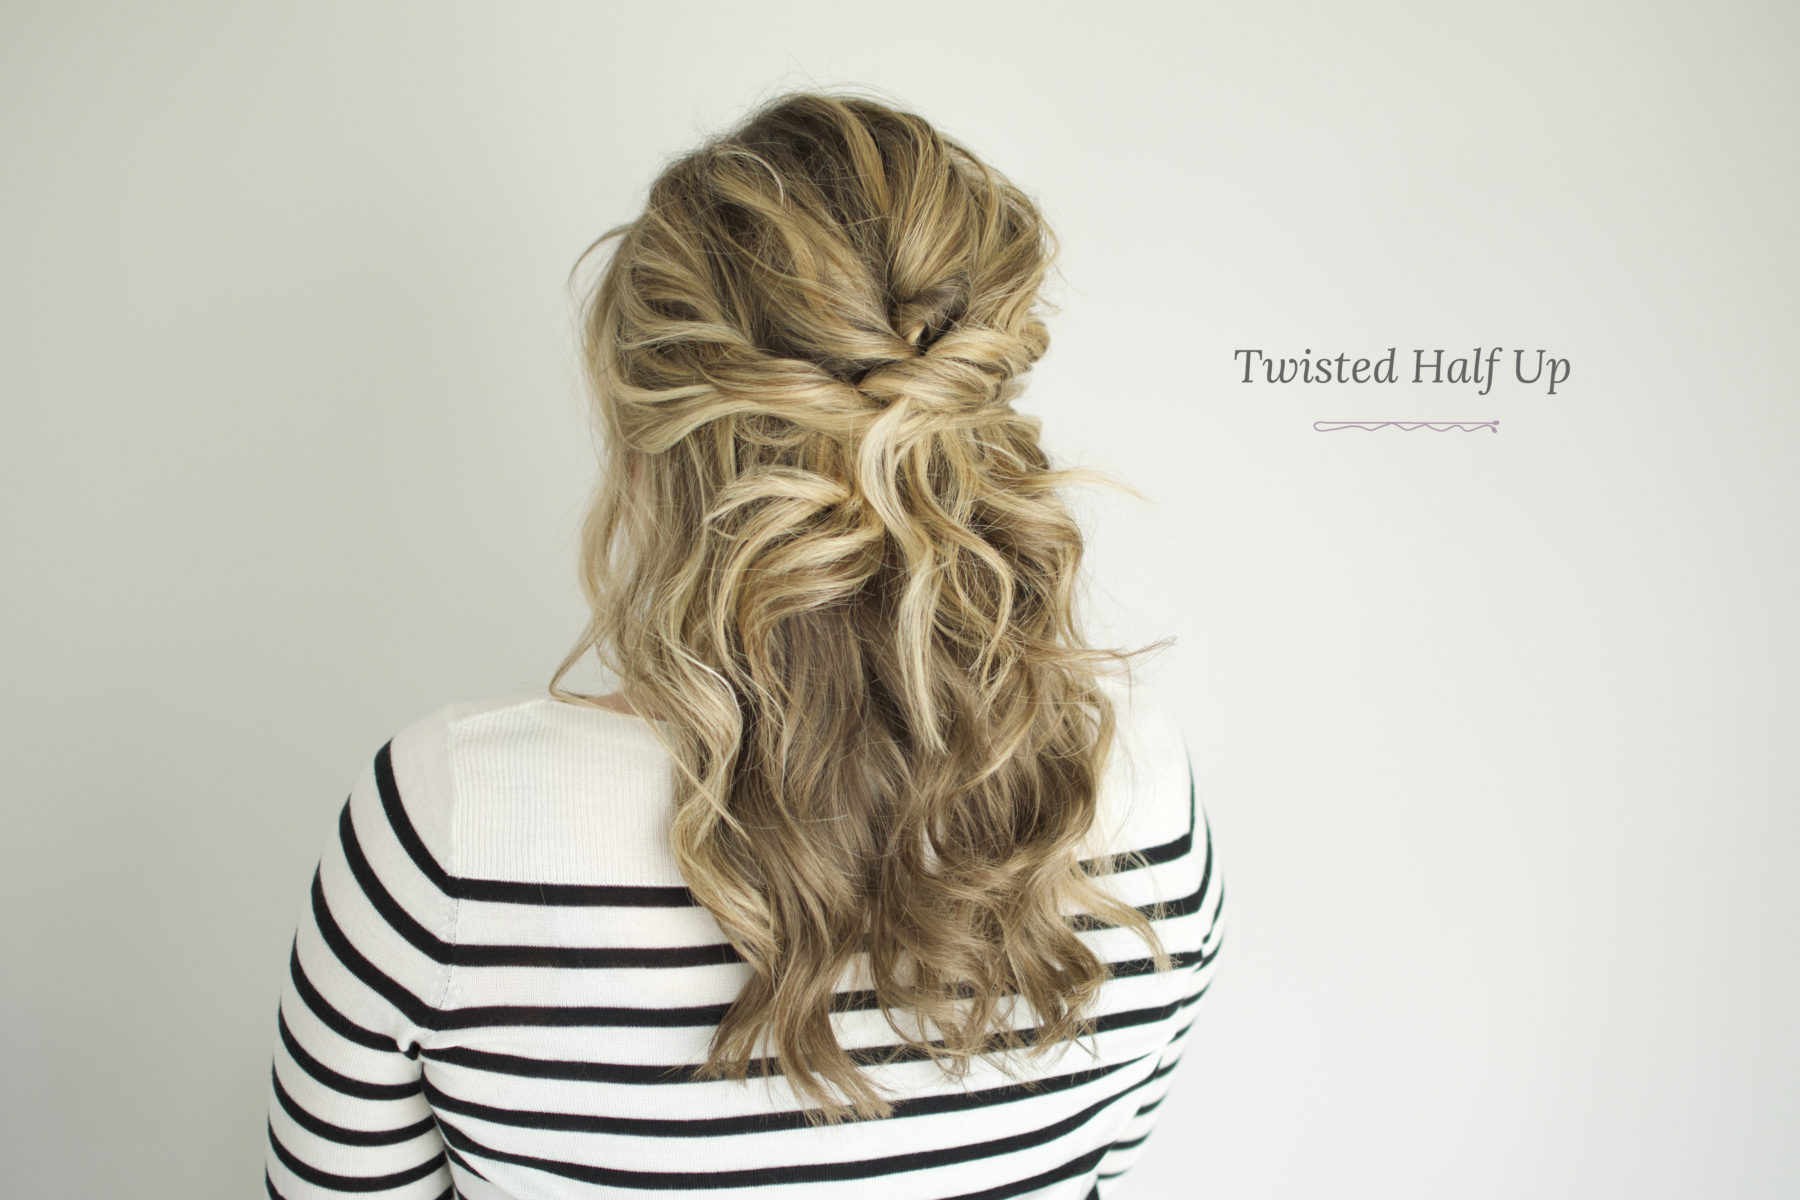 Twisted Half Up Tutorial – The Small Things Blog